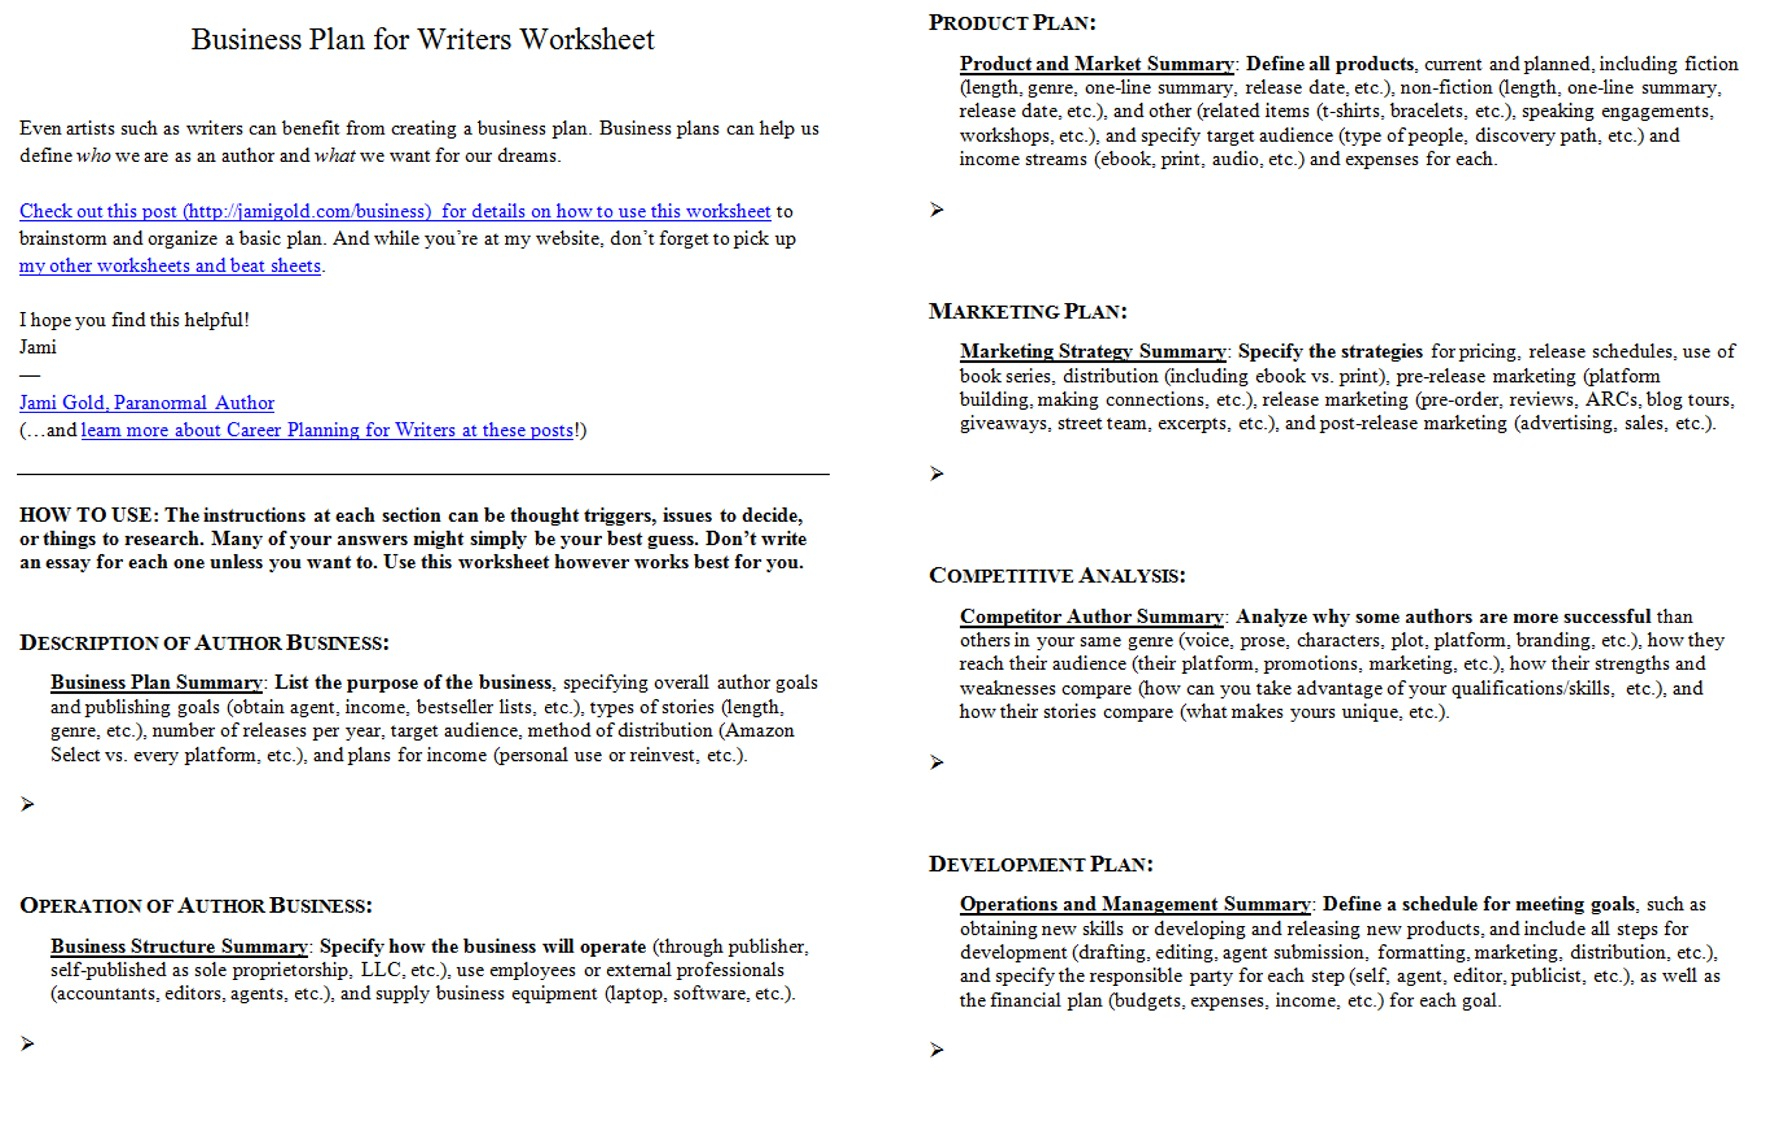 Proatmealus  Wonderful Worksheets For Writers  Jami Gold Paranormal Author With Engaging Screen Shot Of Both Pages Of The Business Plan For Writers Worksheet With Delectable Solubility Curve Worksheet With Answers Also Geometry Worksheets Answer Key In Addition Real Numbers Worksheets And  Worksheet As Well As Solving Linear Equations Worksheet Algebra  Additionally Classification Of Matter Worksheets From Jamigoldcom With Proatmealus  Engaging Worksheets For Writers  Jami Gold Paranormal Author With Delectable Screen Shot Of Both Pages Of The Business Plan For Writers Worksheet And Wonderful Solubility Curve Worksheet With Answers Also Geometry Worksheets Answer Key In Addition Real Numbers Worksheets From Jamigoldcom